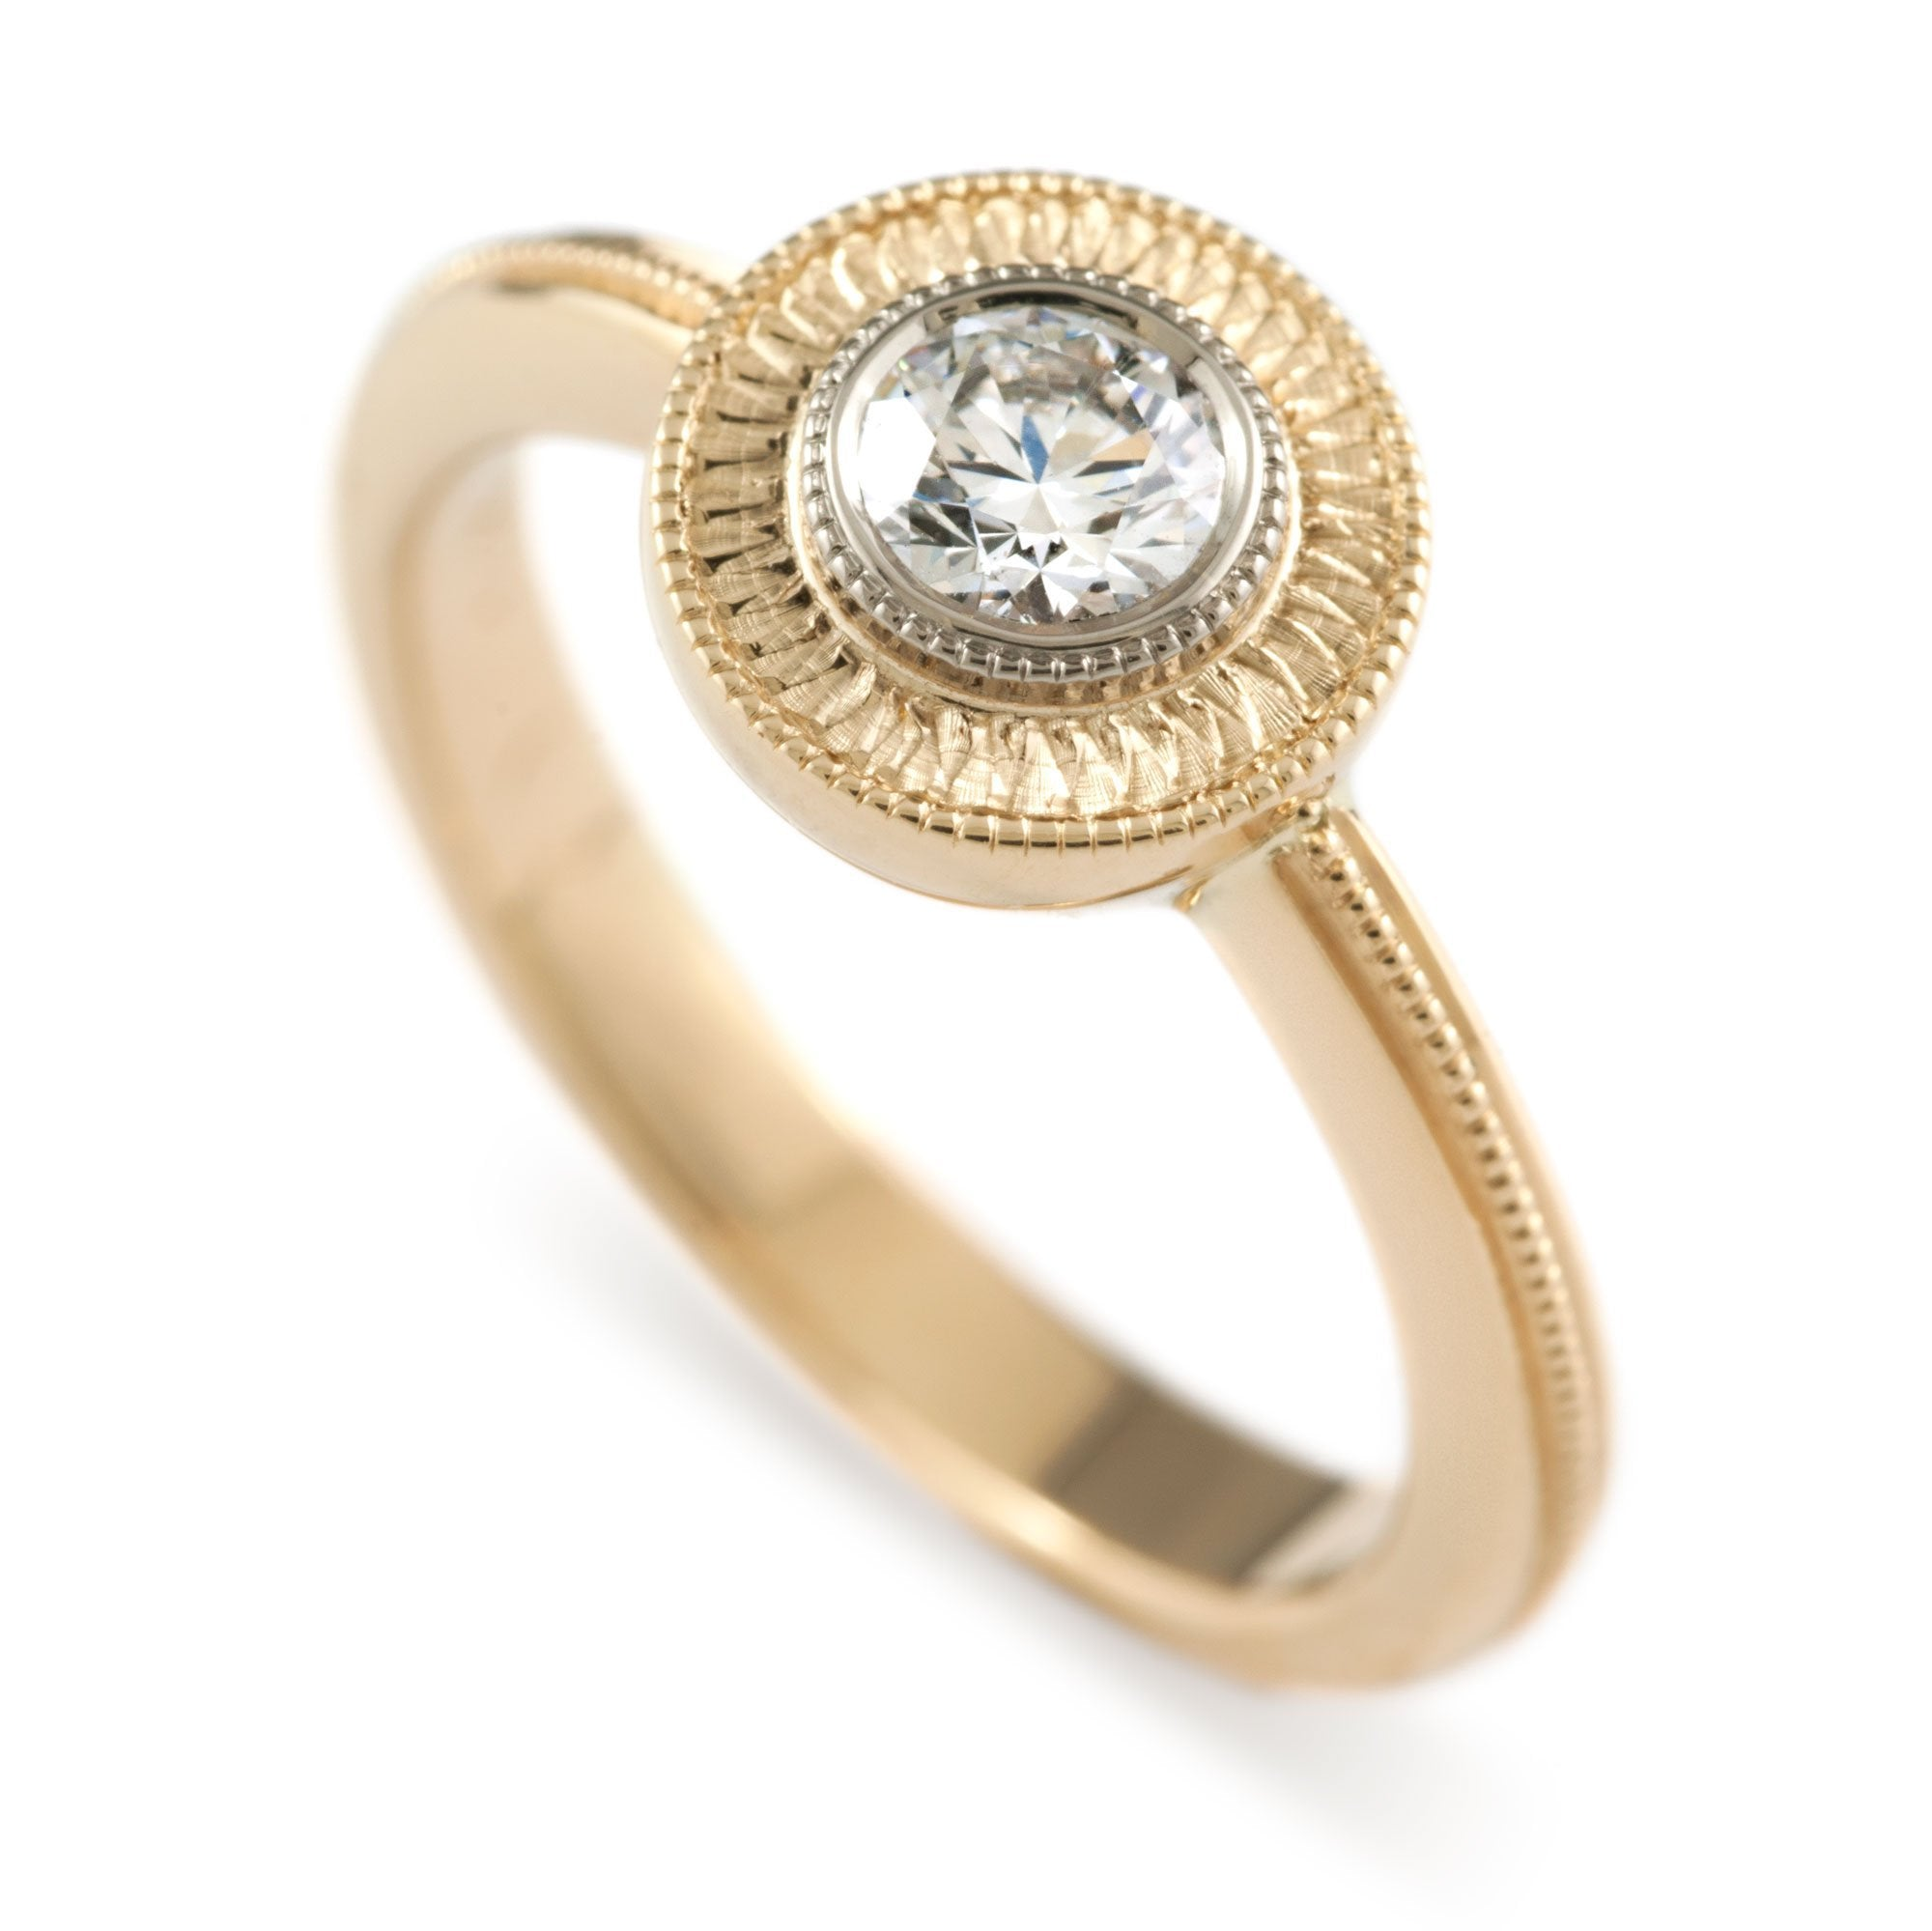 Soleil Diamond Engagement Ring - Era Design Vancouver